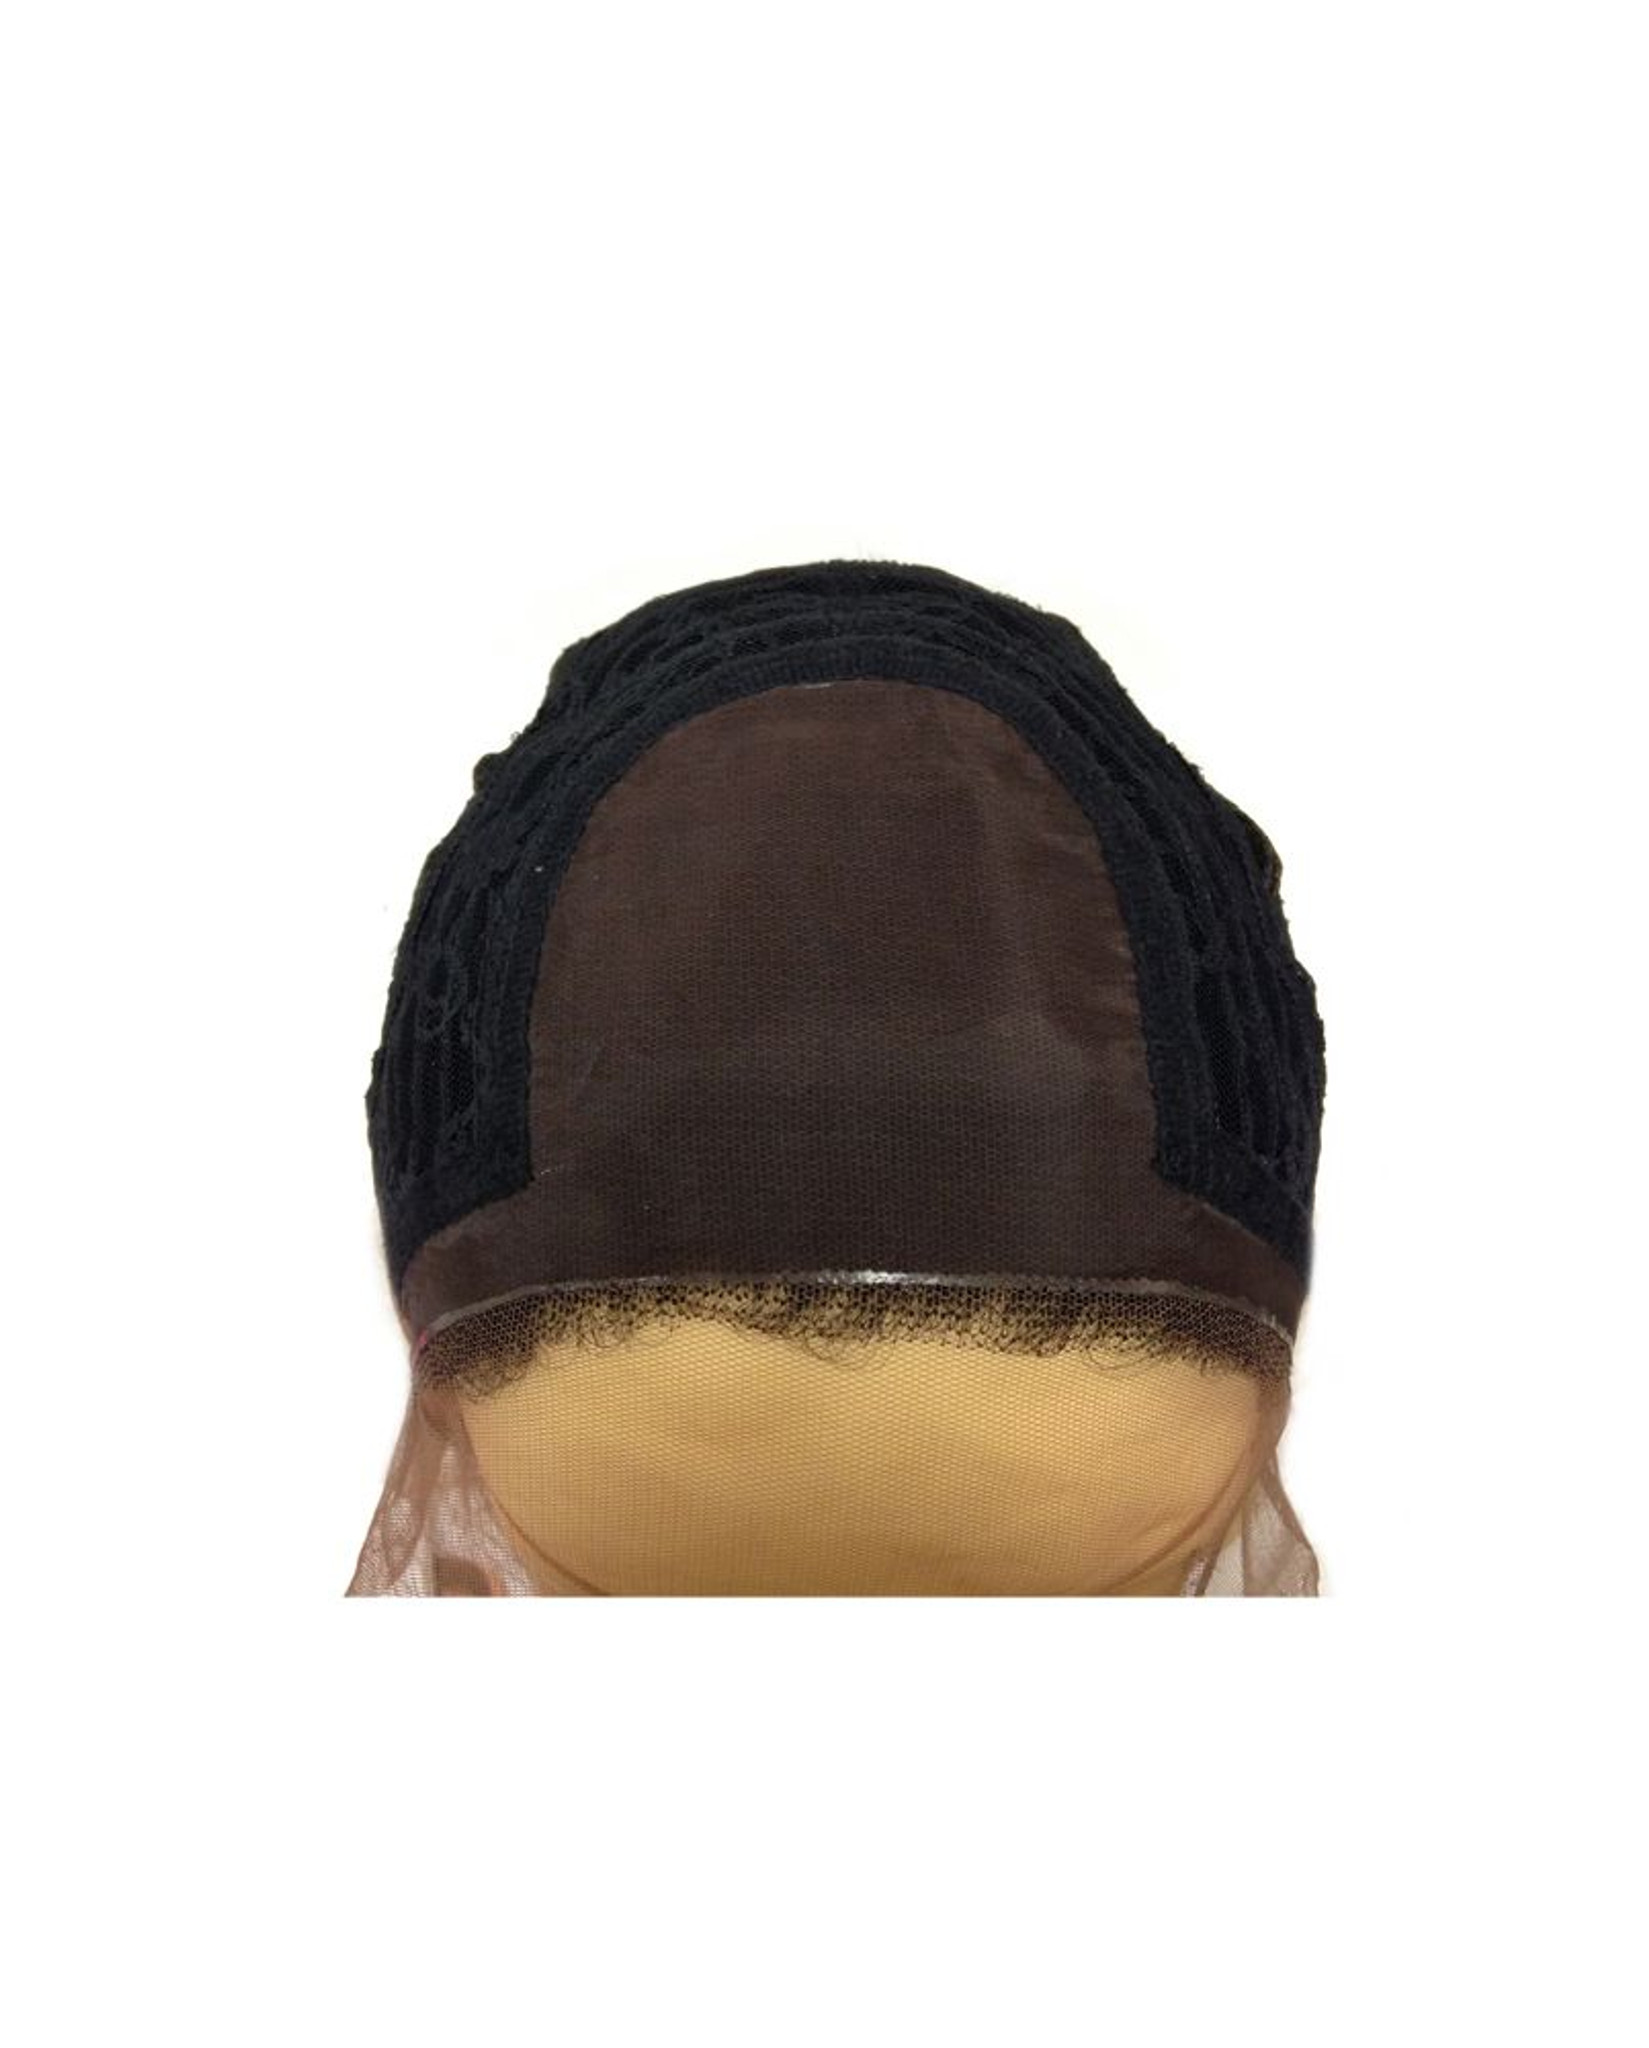 Cameron | Sepia | Lace Front  4 X 4 Parting cap style